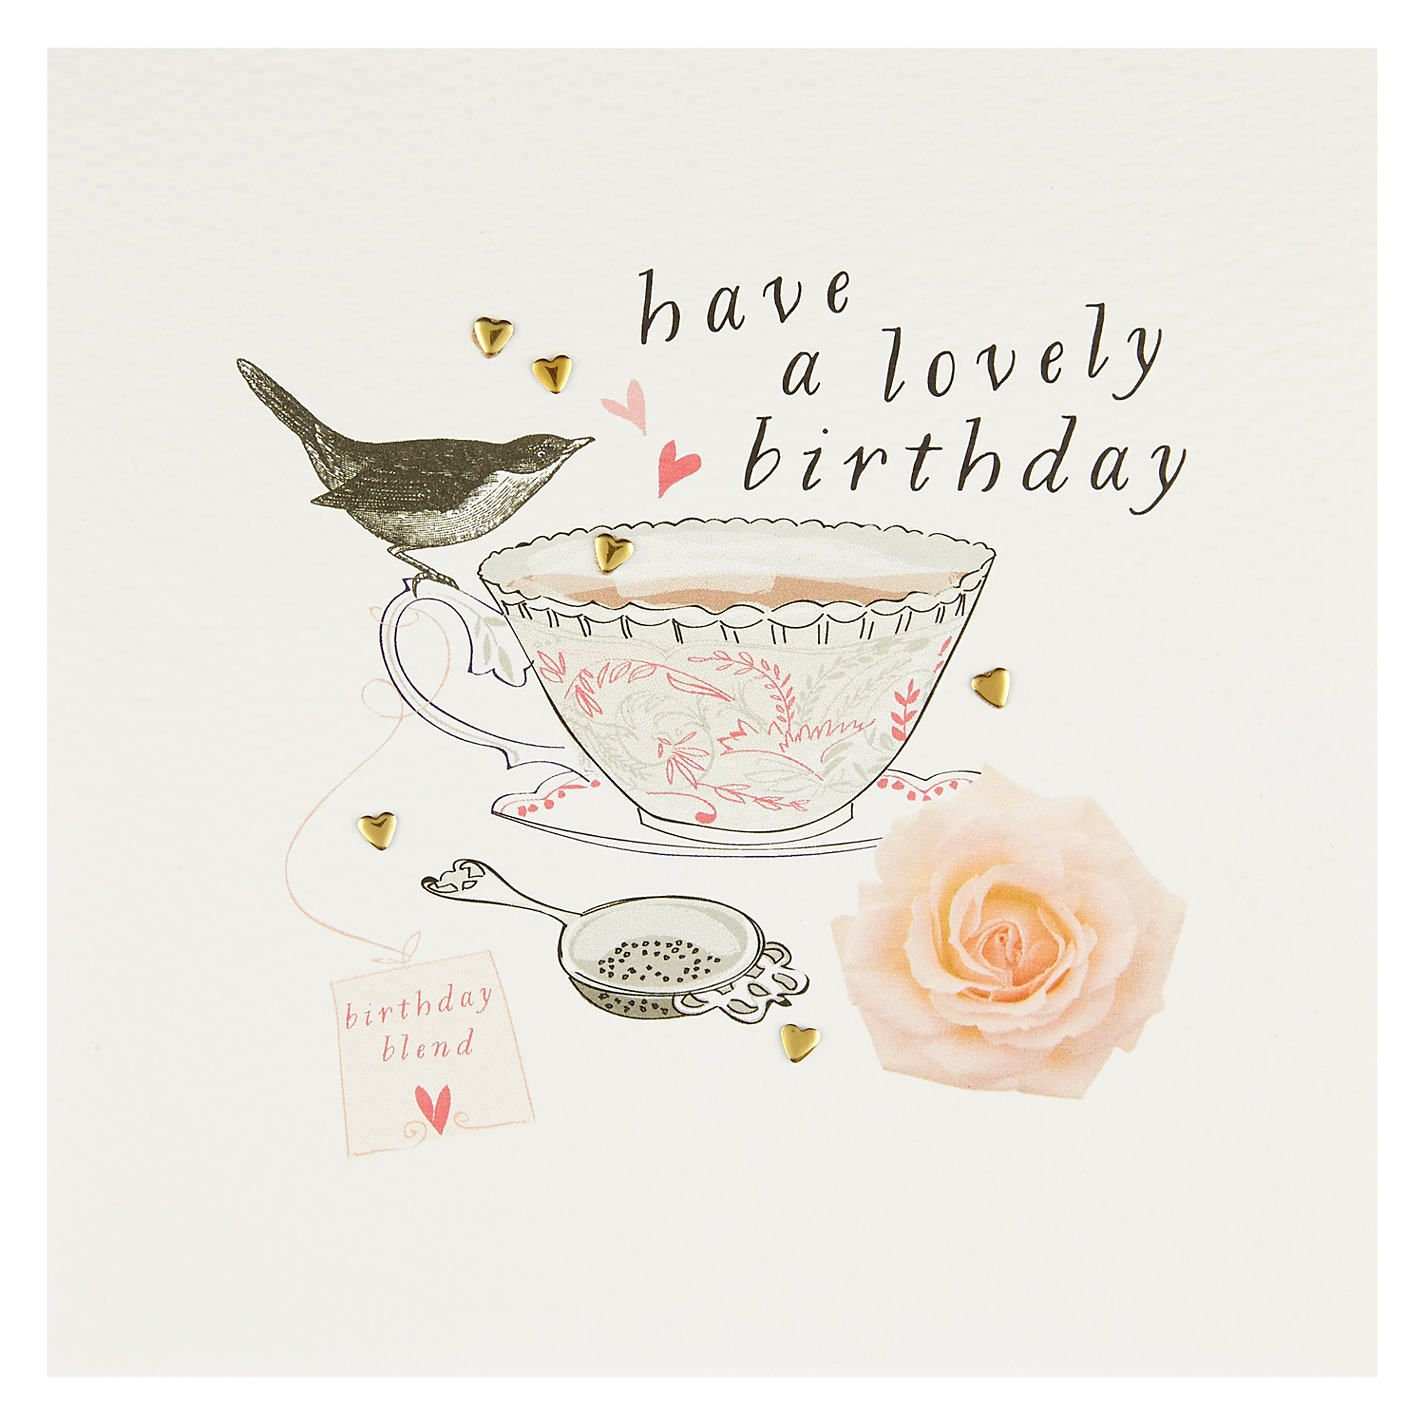 Buy belly button designs have a lovely birthday card from our buy belly button designs have a lovely birthday card from our greeting cards range at john m4hsunfo